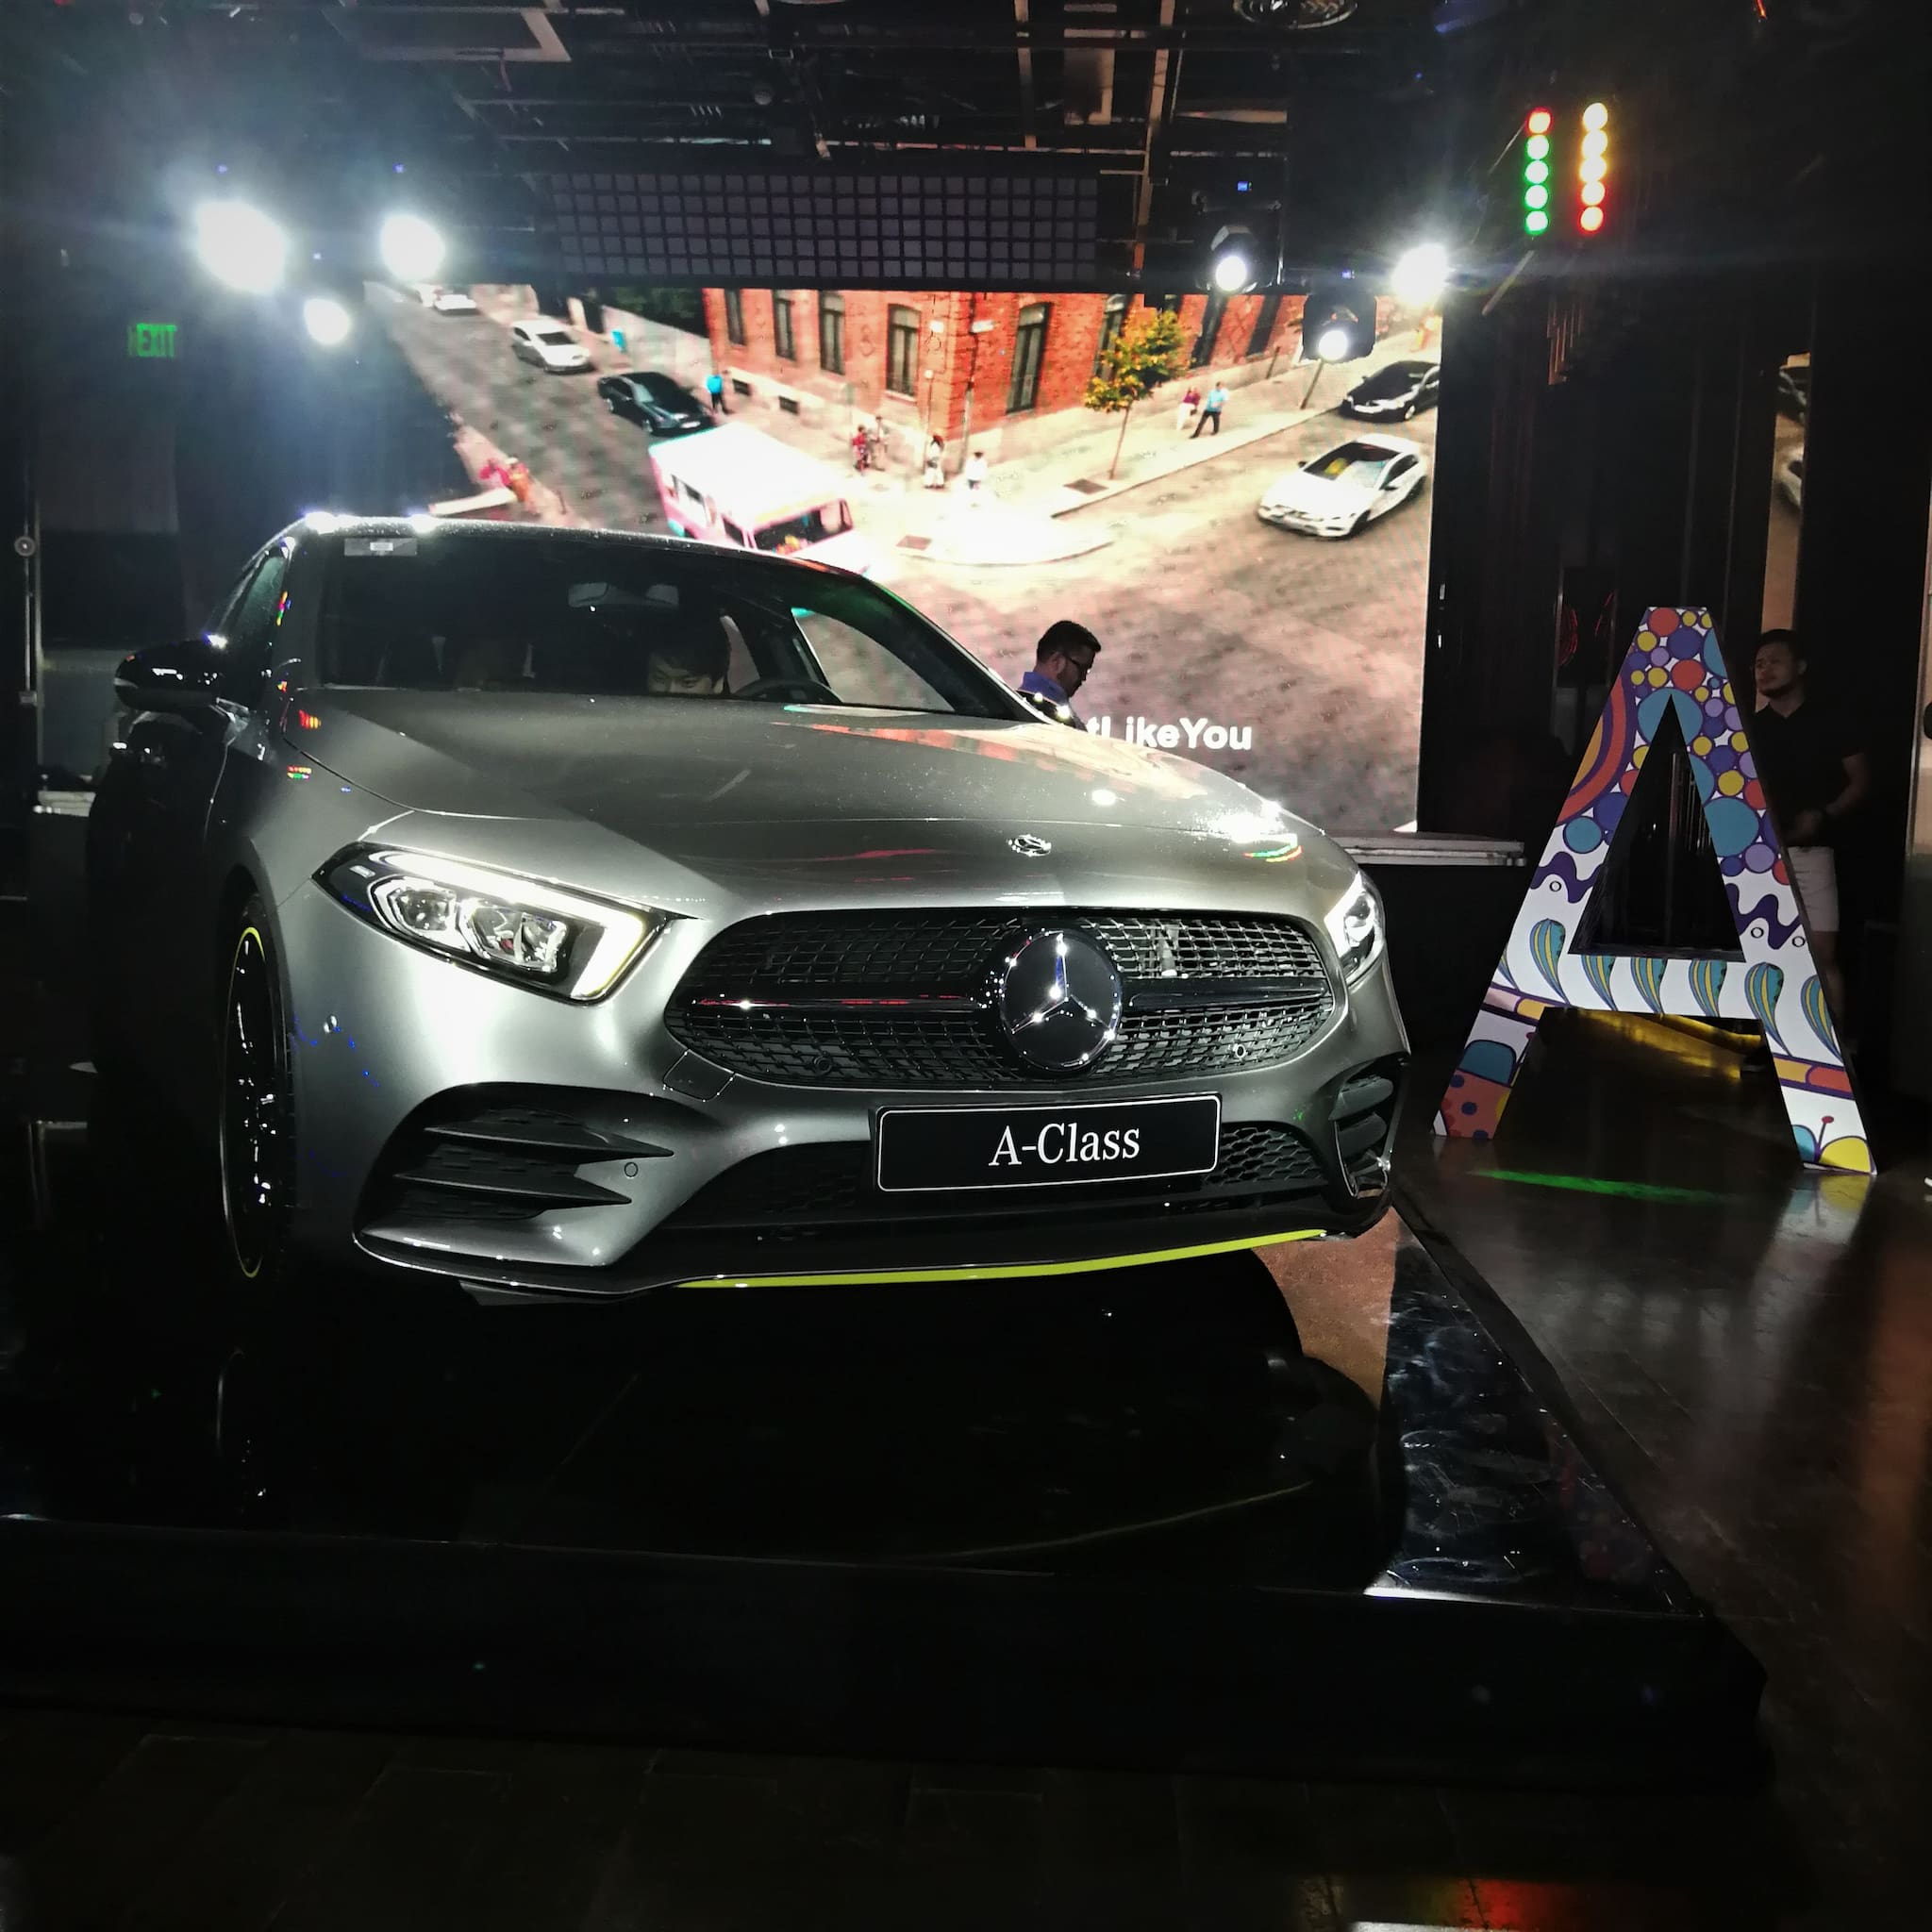 All-New Mercedes-Benz A-Class Designed to Heighten Car-Occupant Connection